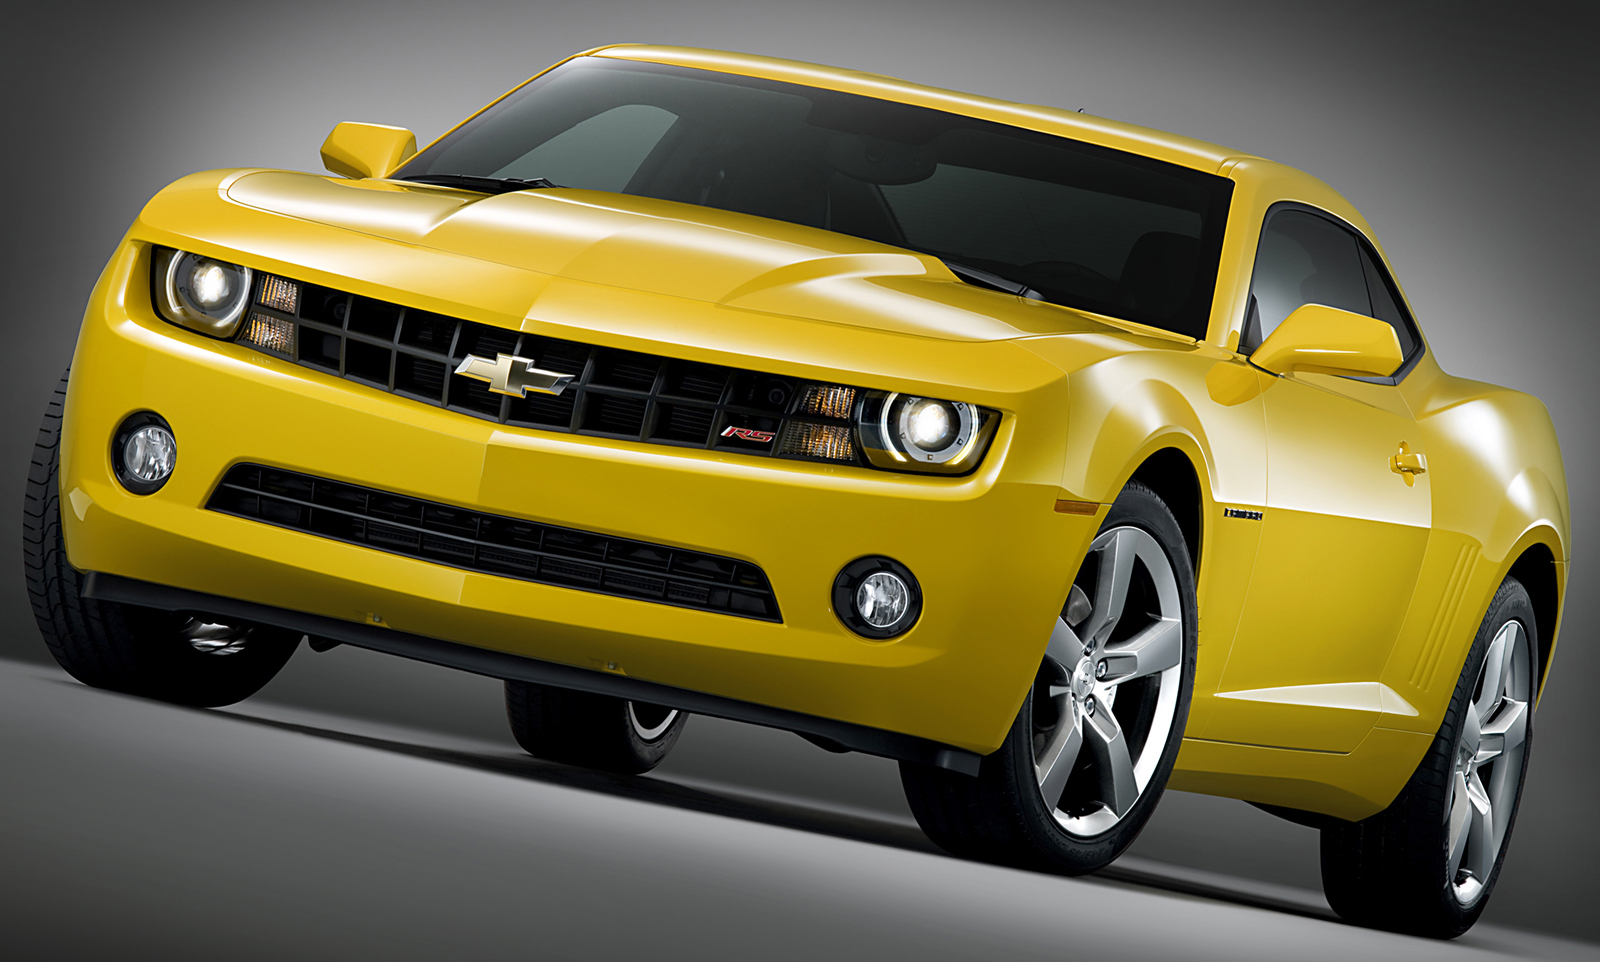 Chevrolet Camaro Production 2010 Yellow Nose Wallpaper HD